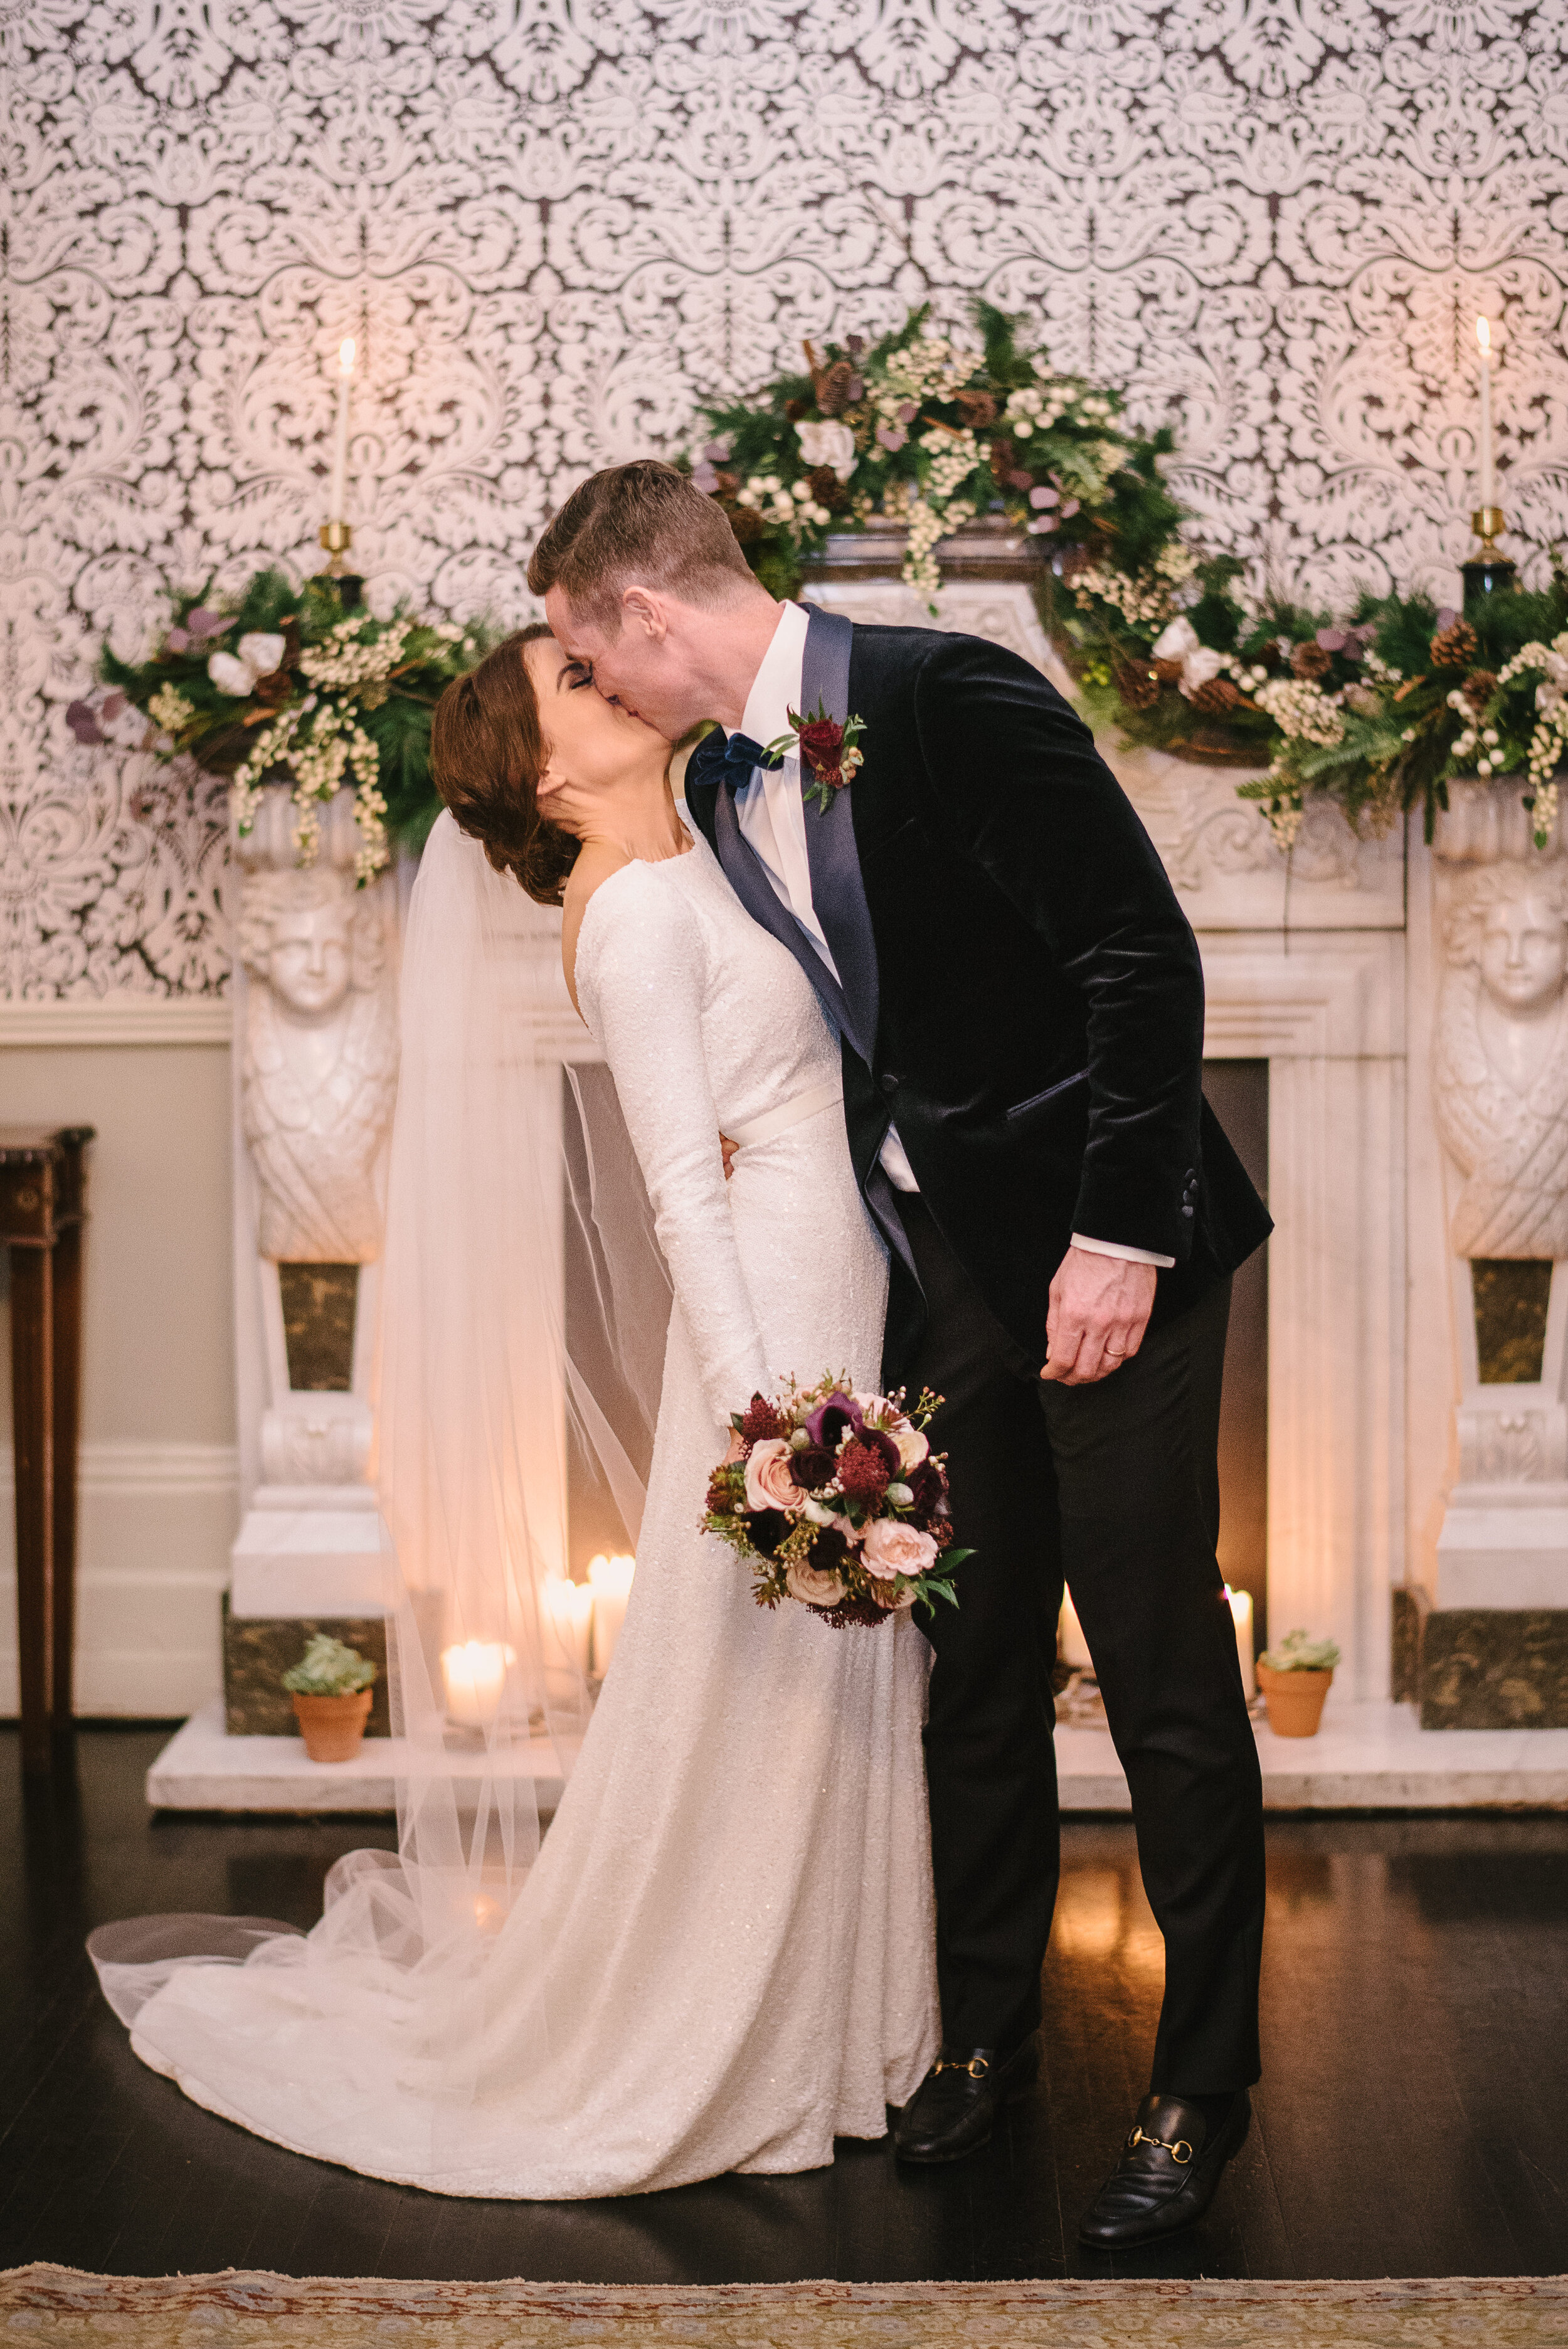 Roisin wears the Meghan sequin wedding dress by And For Love